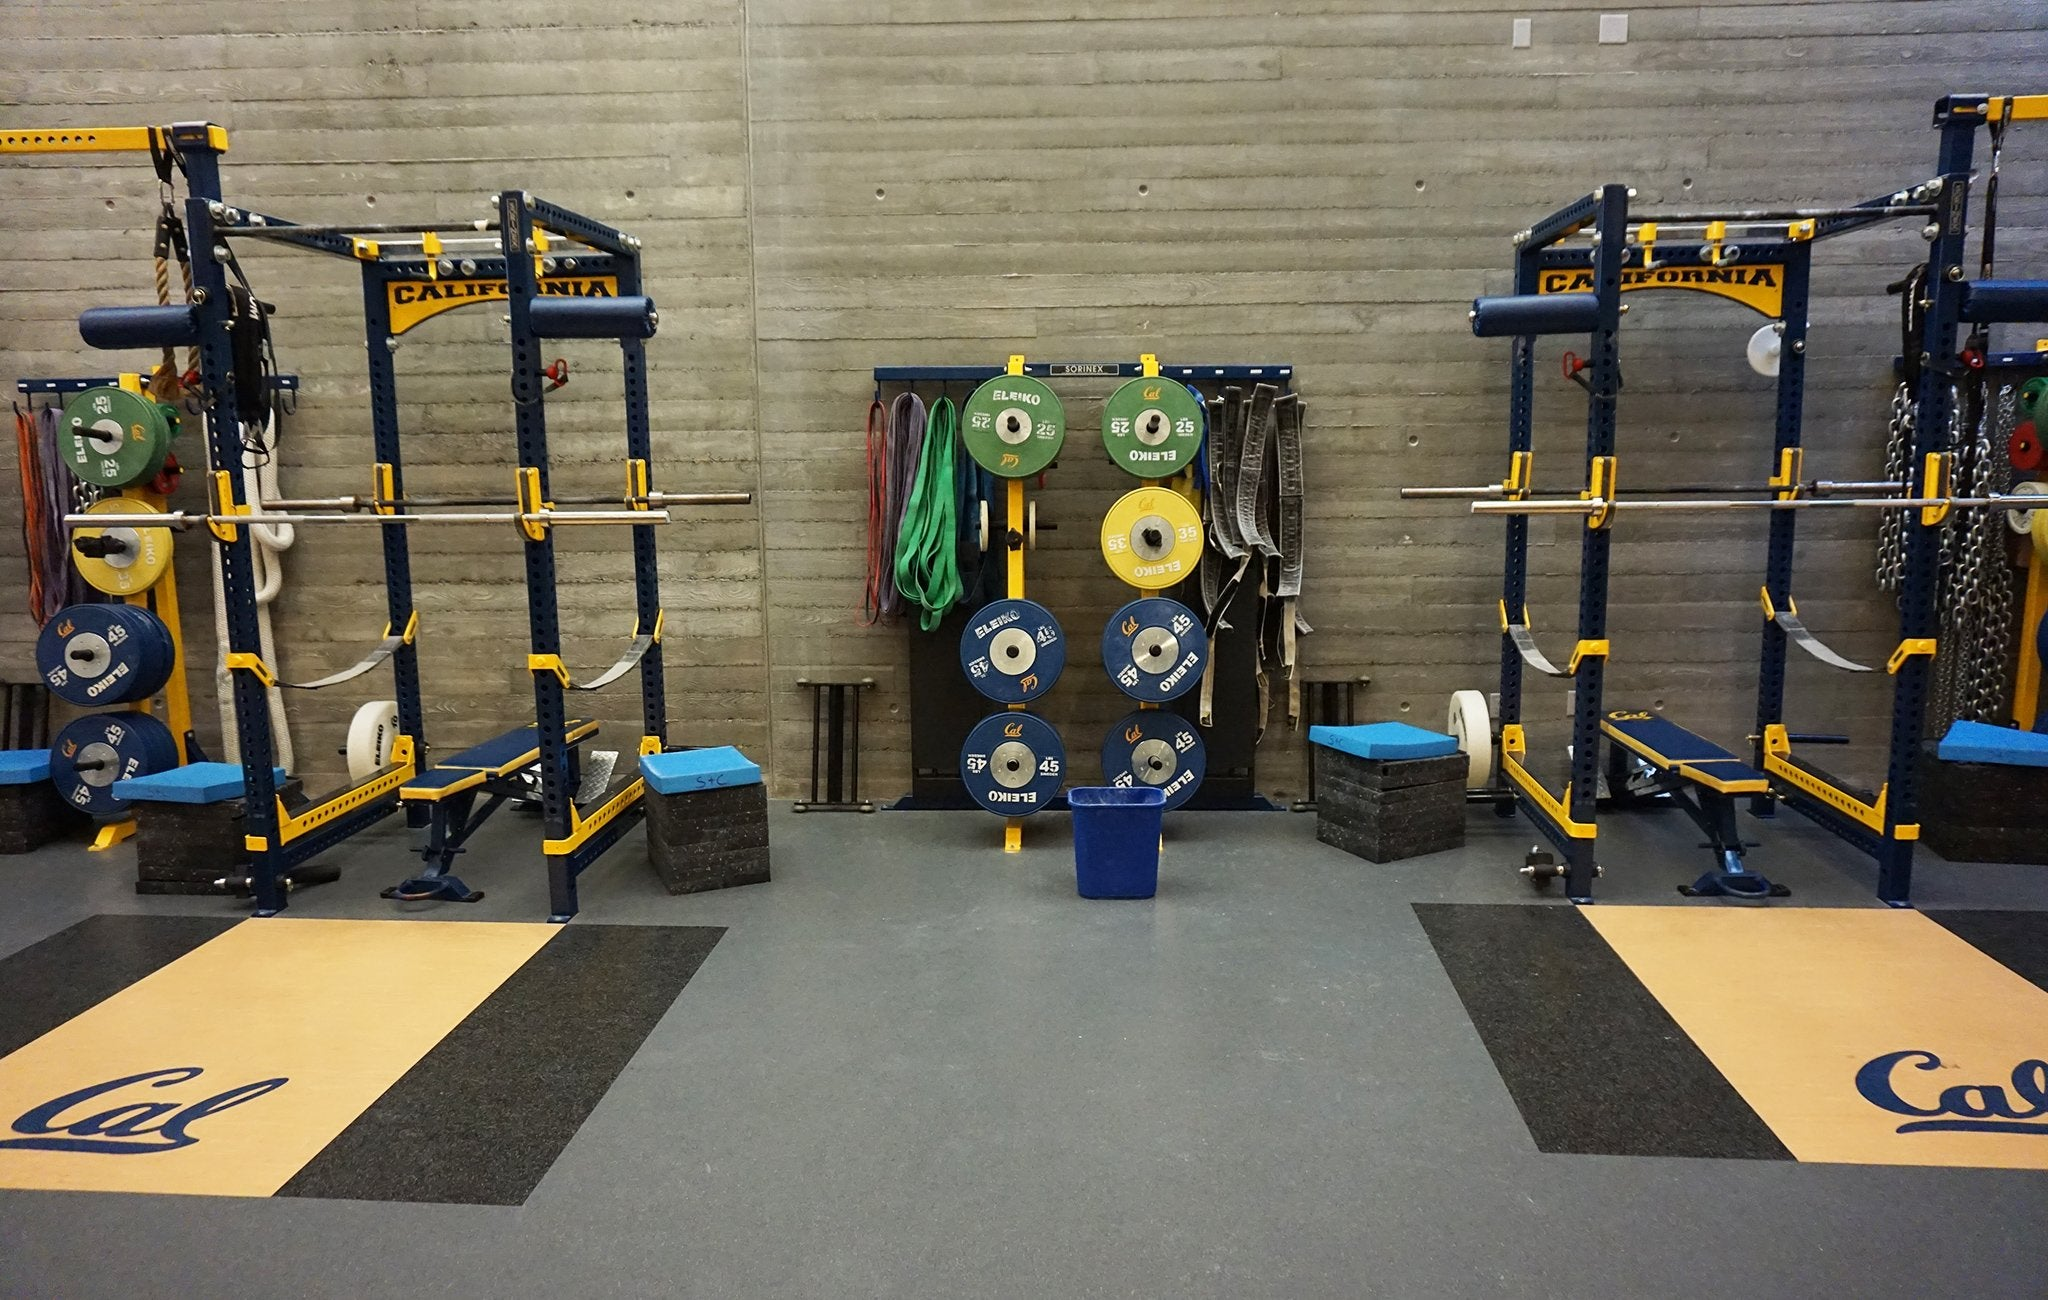 University California Base Camp Half Racks